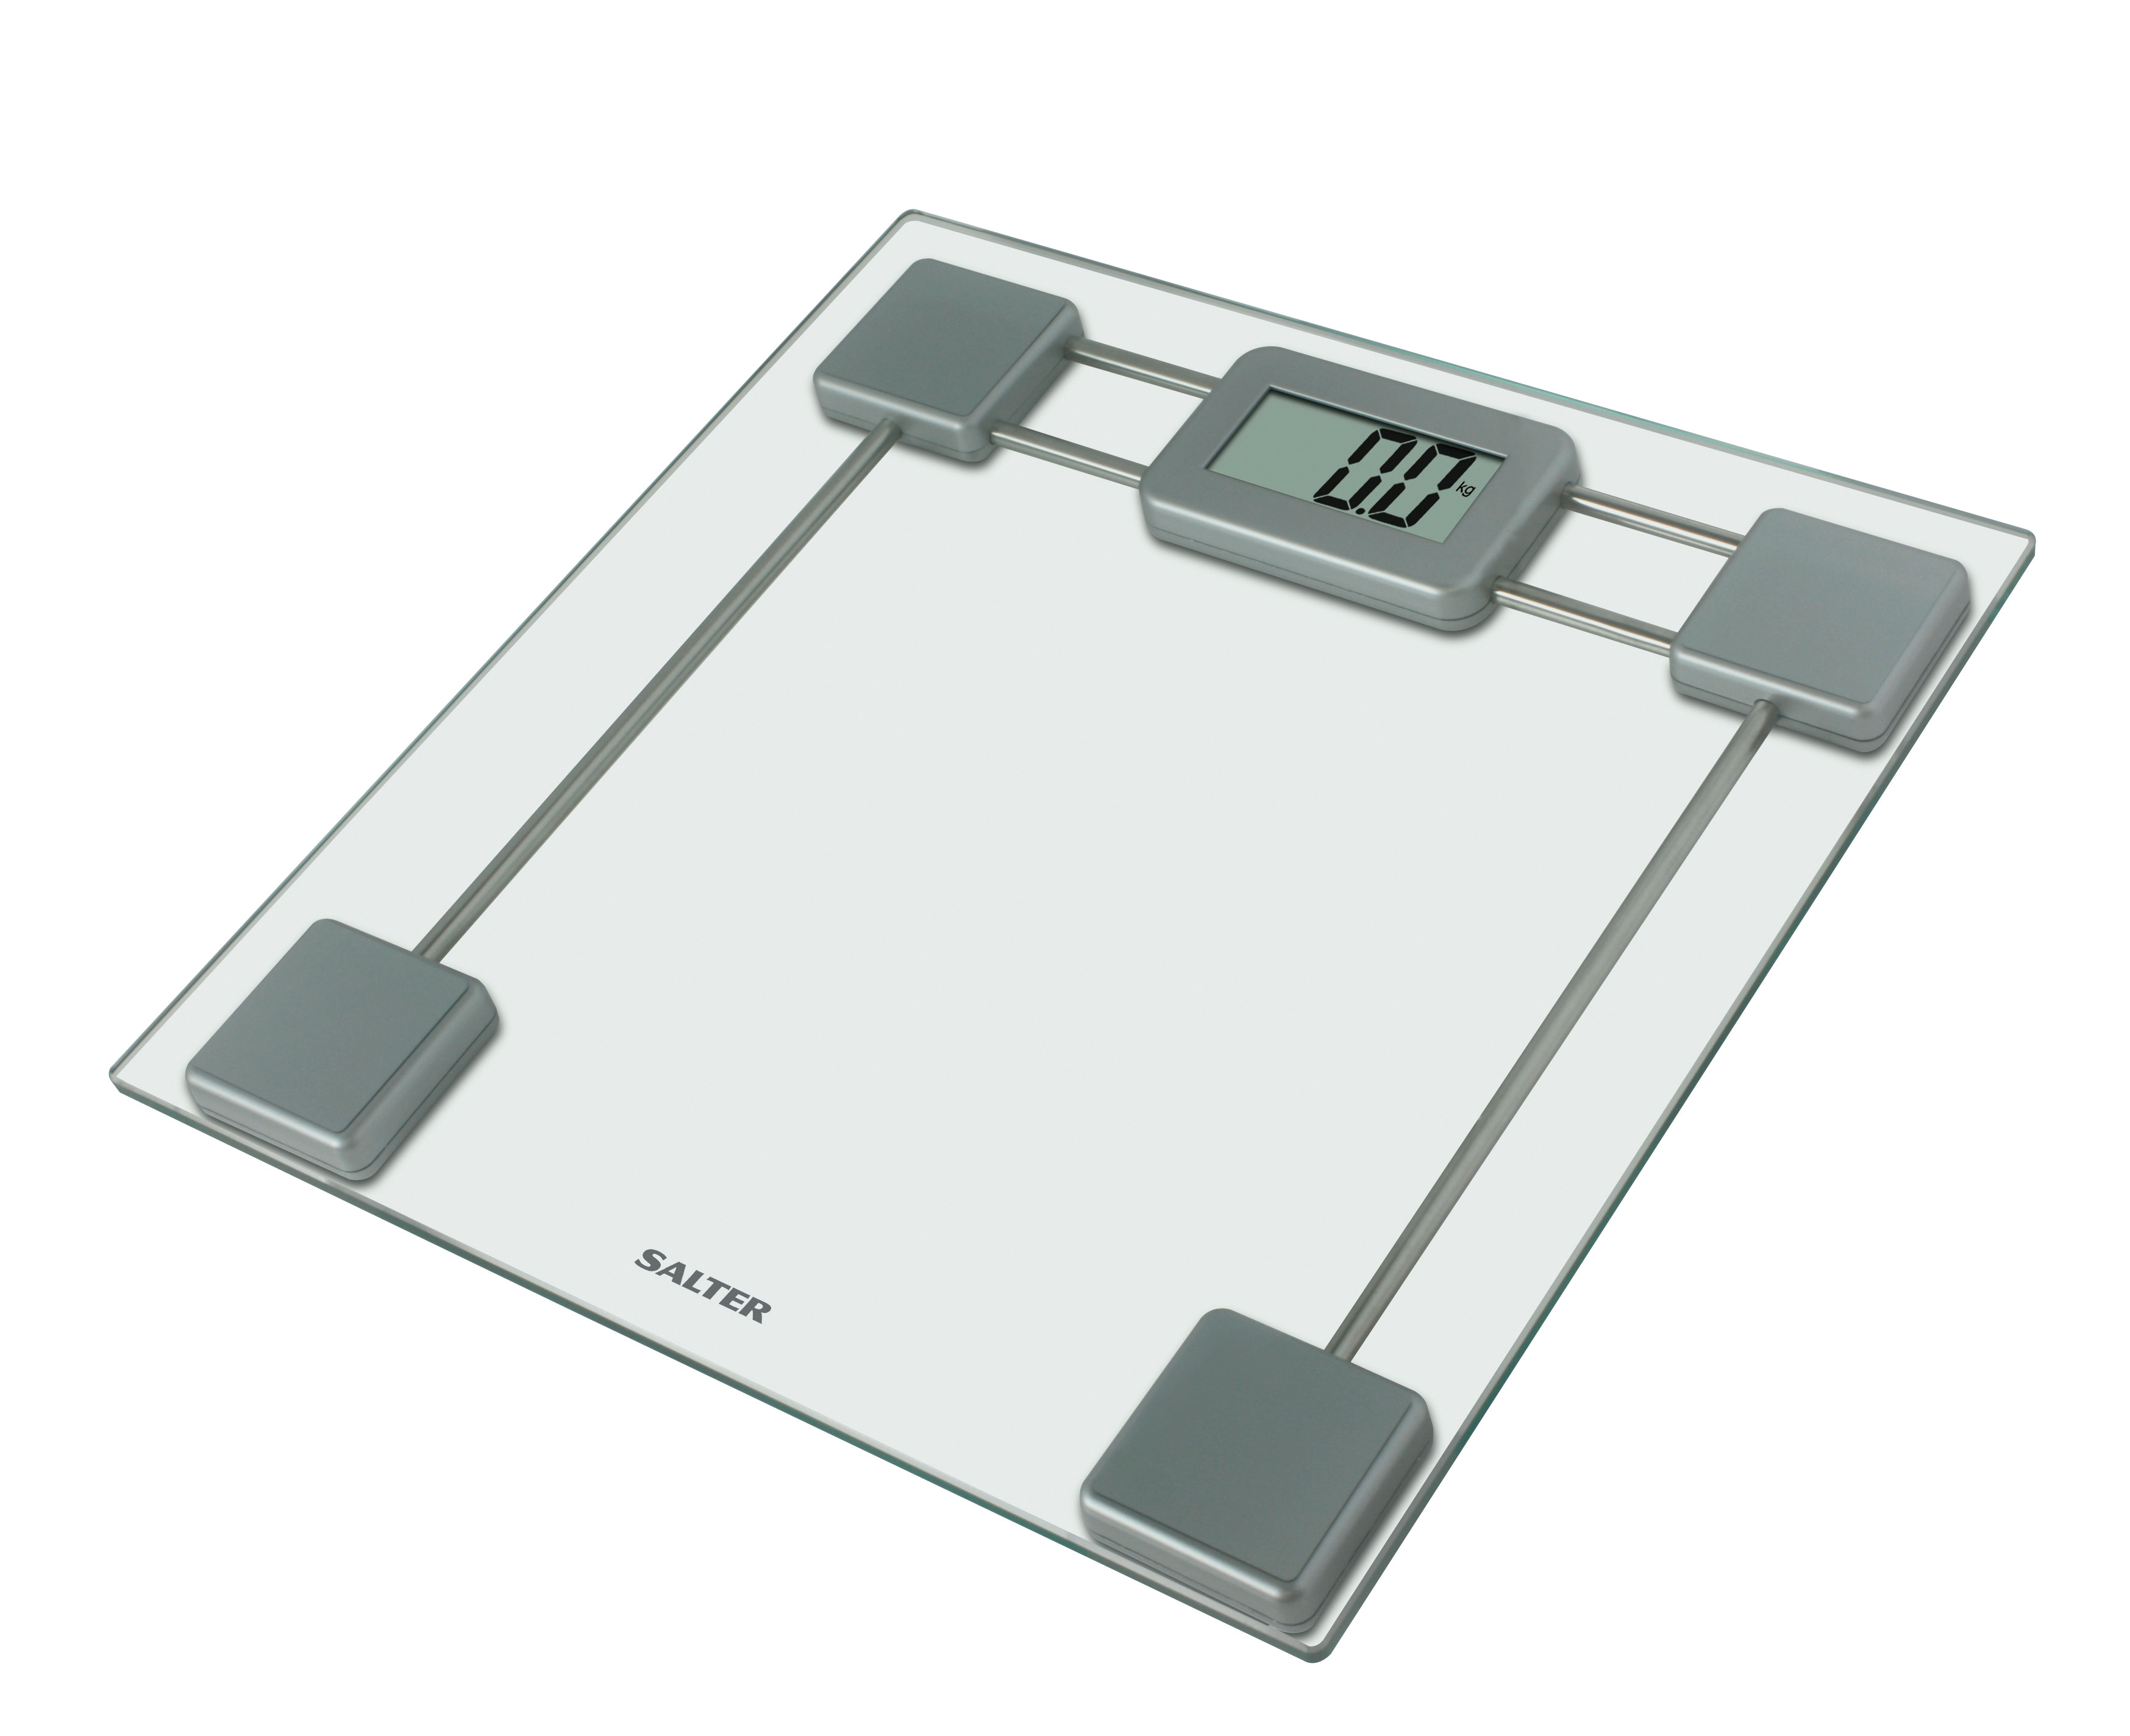 premium style designer coated analyser of beurer ito new launches news bathroom scales collection your body for